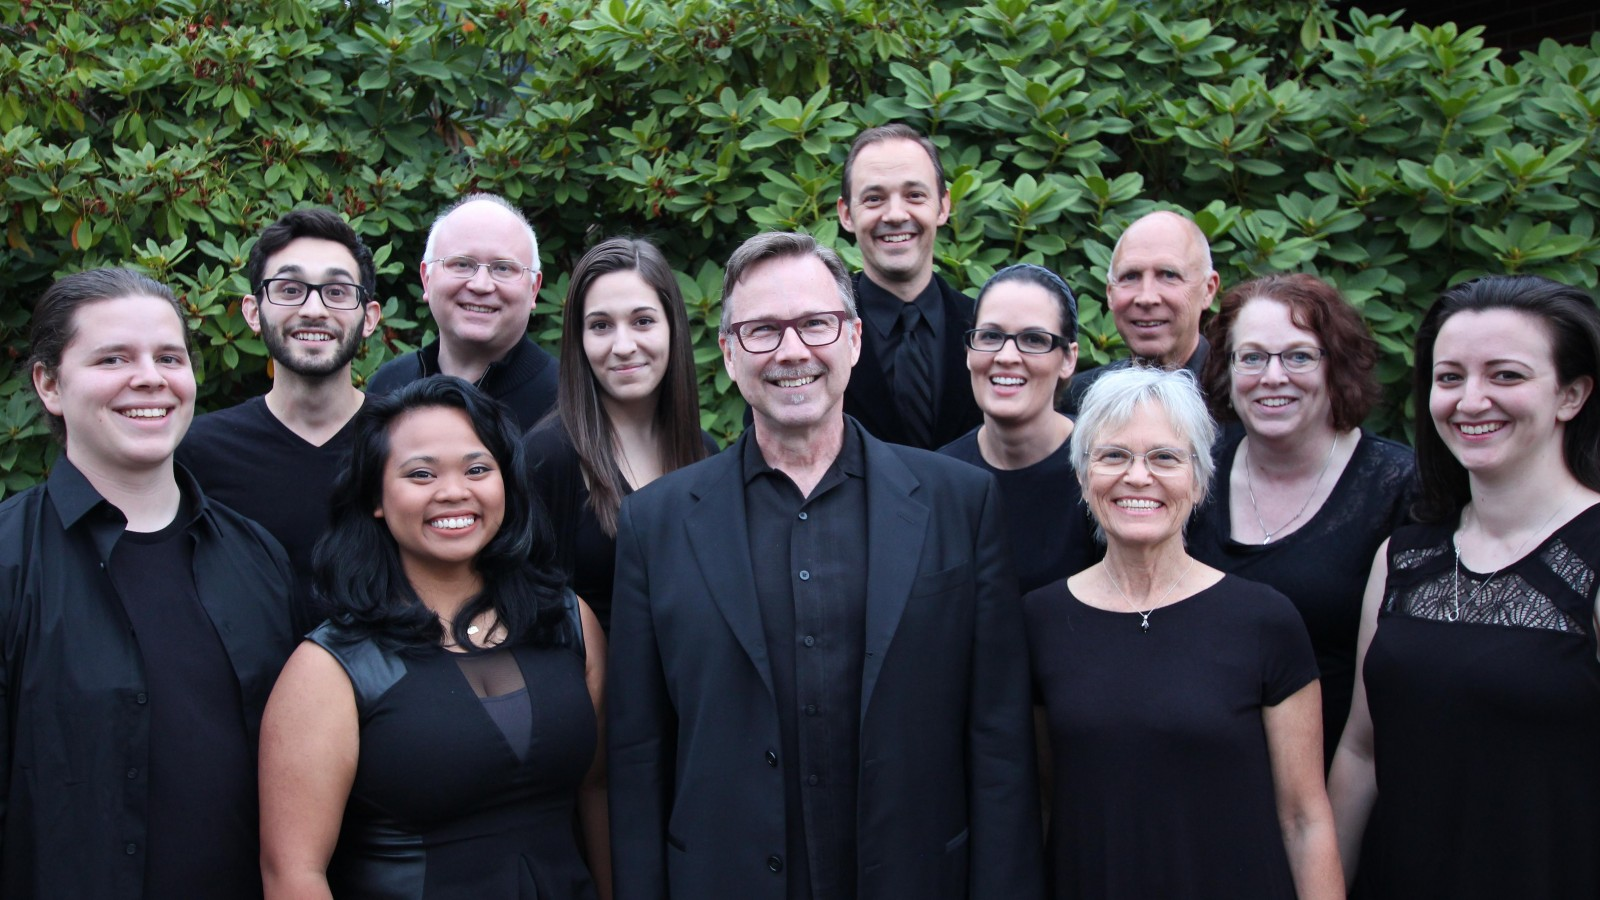 reSound, a Northwest Chamber Ensemble. reSound Fall 2017